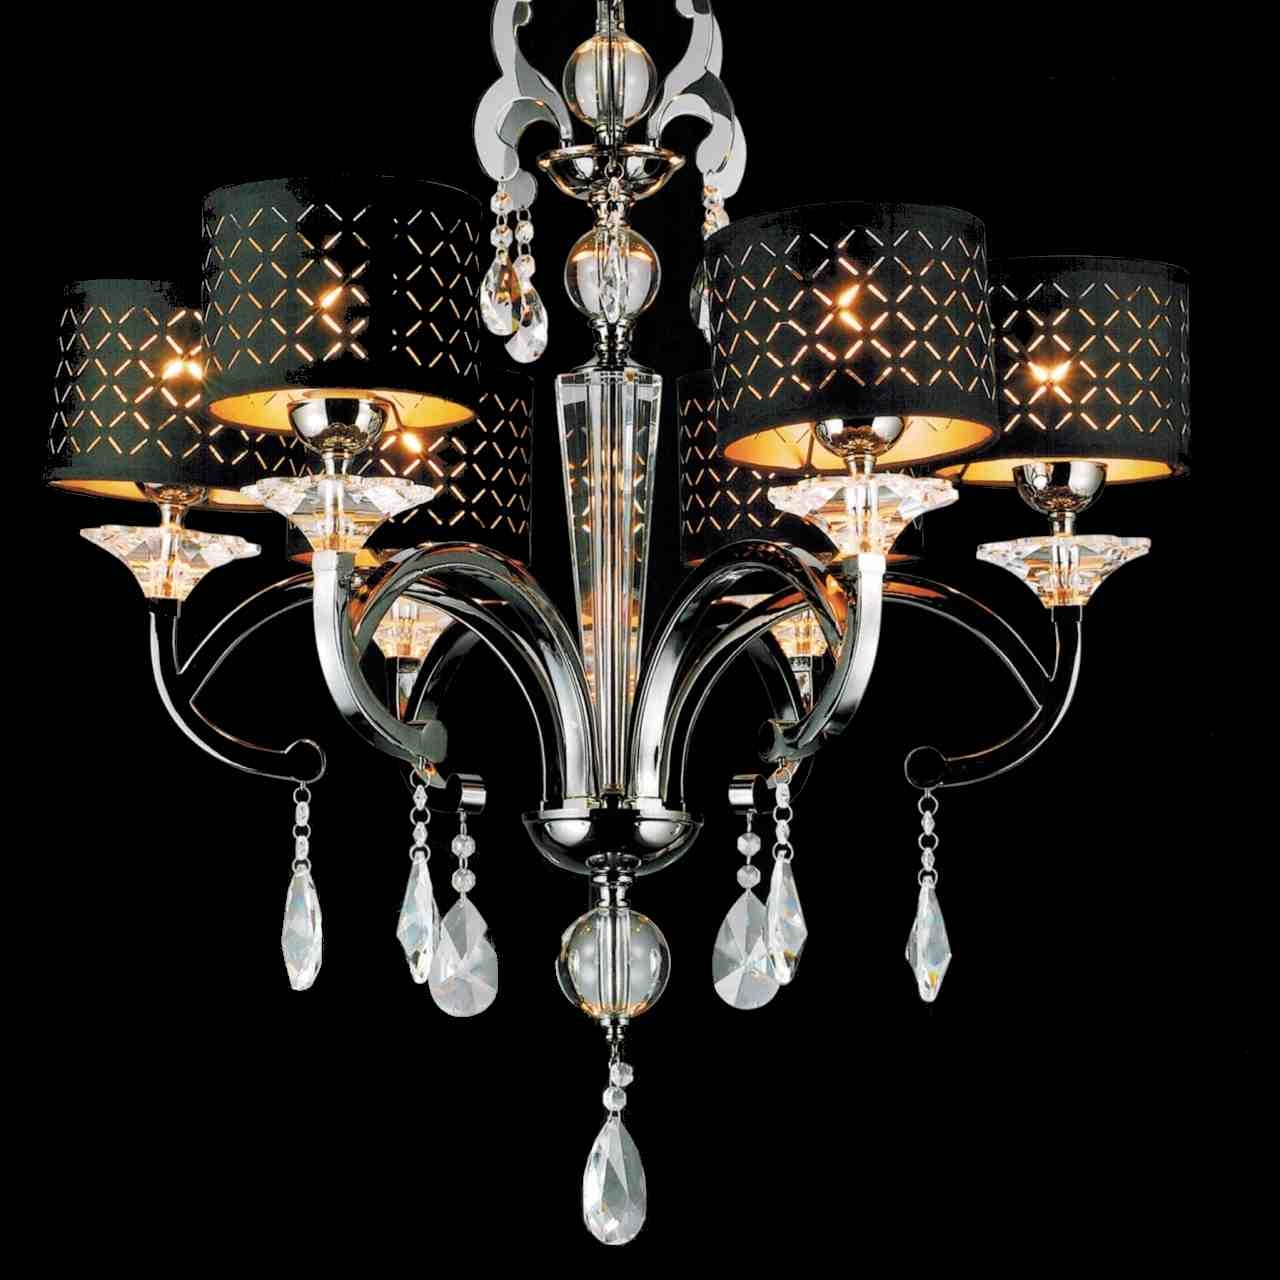 Brizzo Lighting Stores 29 Bello Nero Contemporary Crystal Round In Contemporary Black Chandelier (Image 3 of 15)